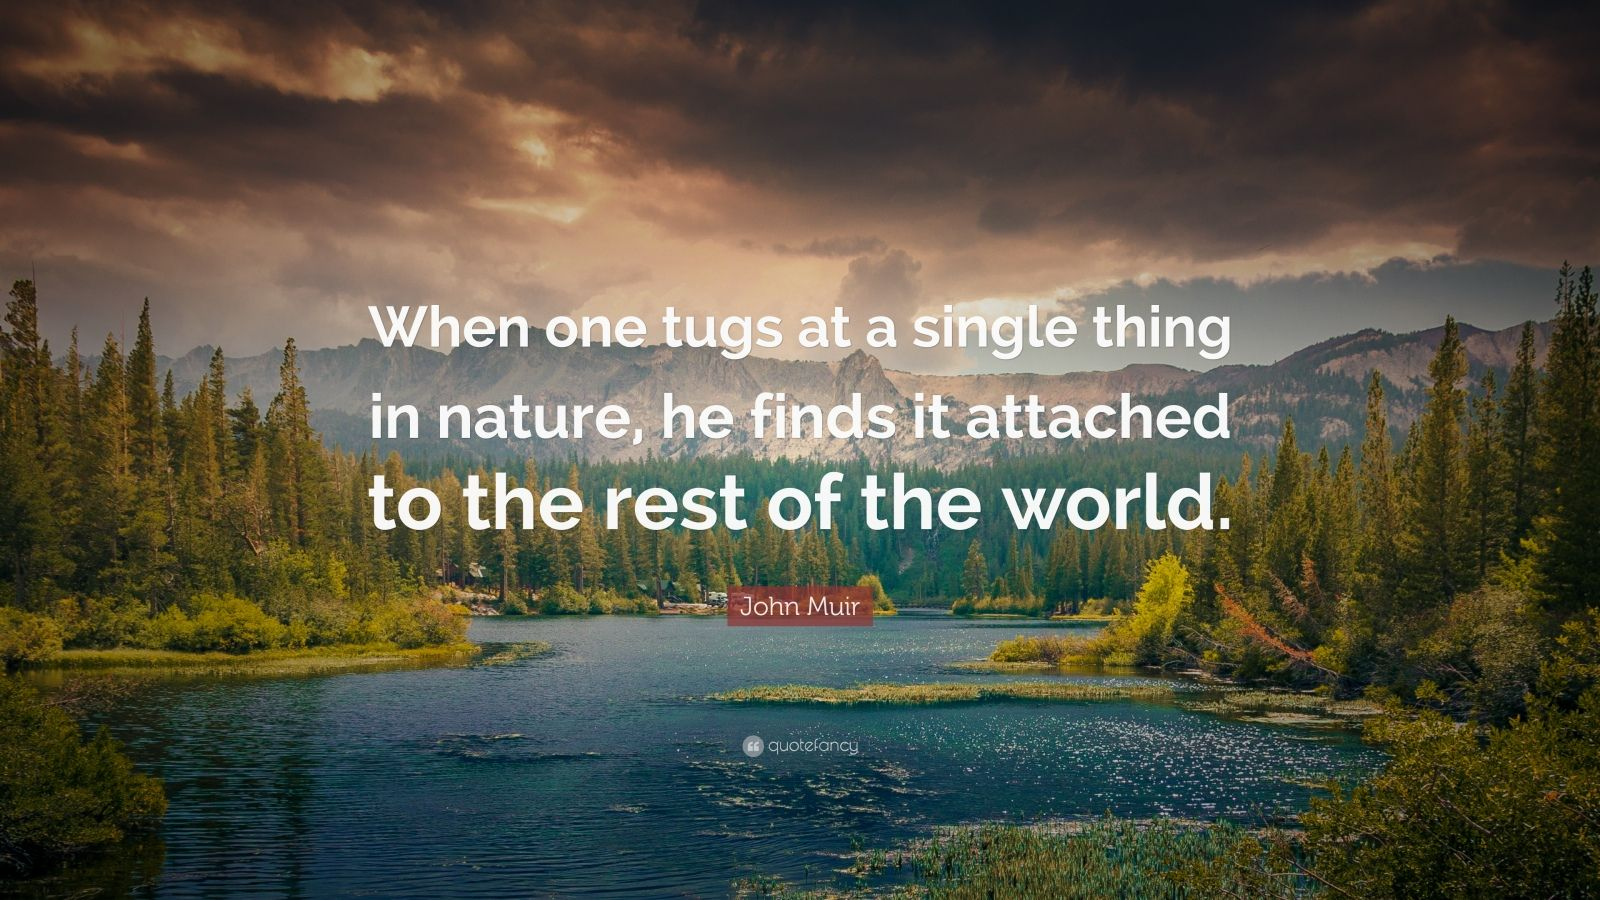 Henry David Thoreau Wallpaper Quote John Muir Quote When One Tugs At A Single Thing In